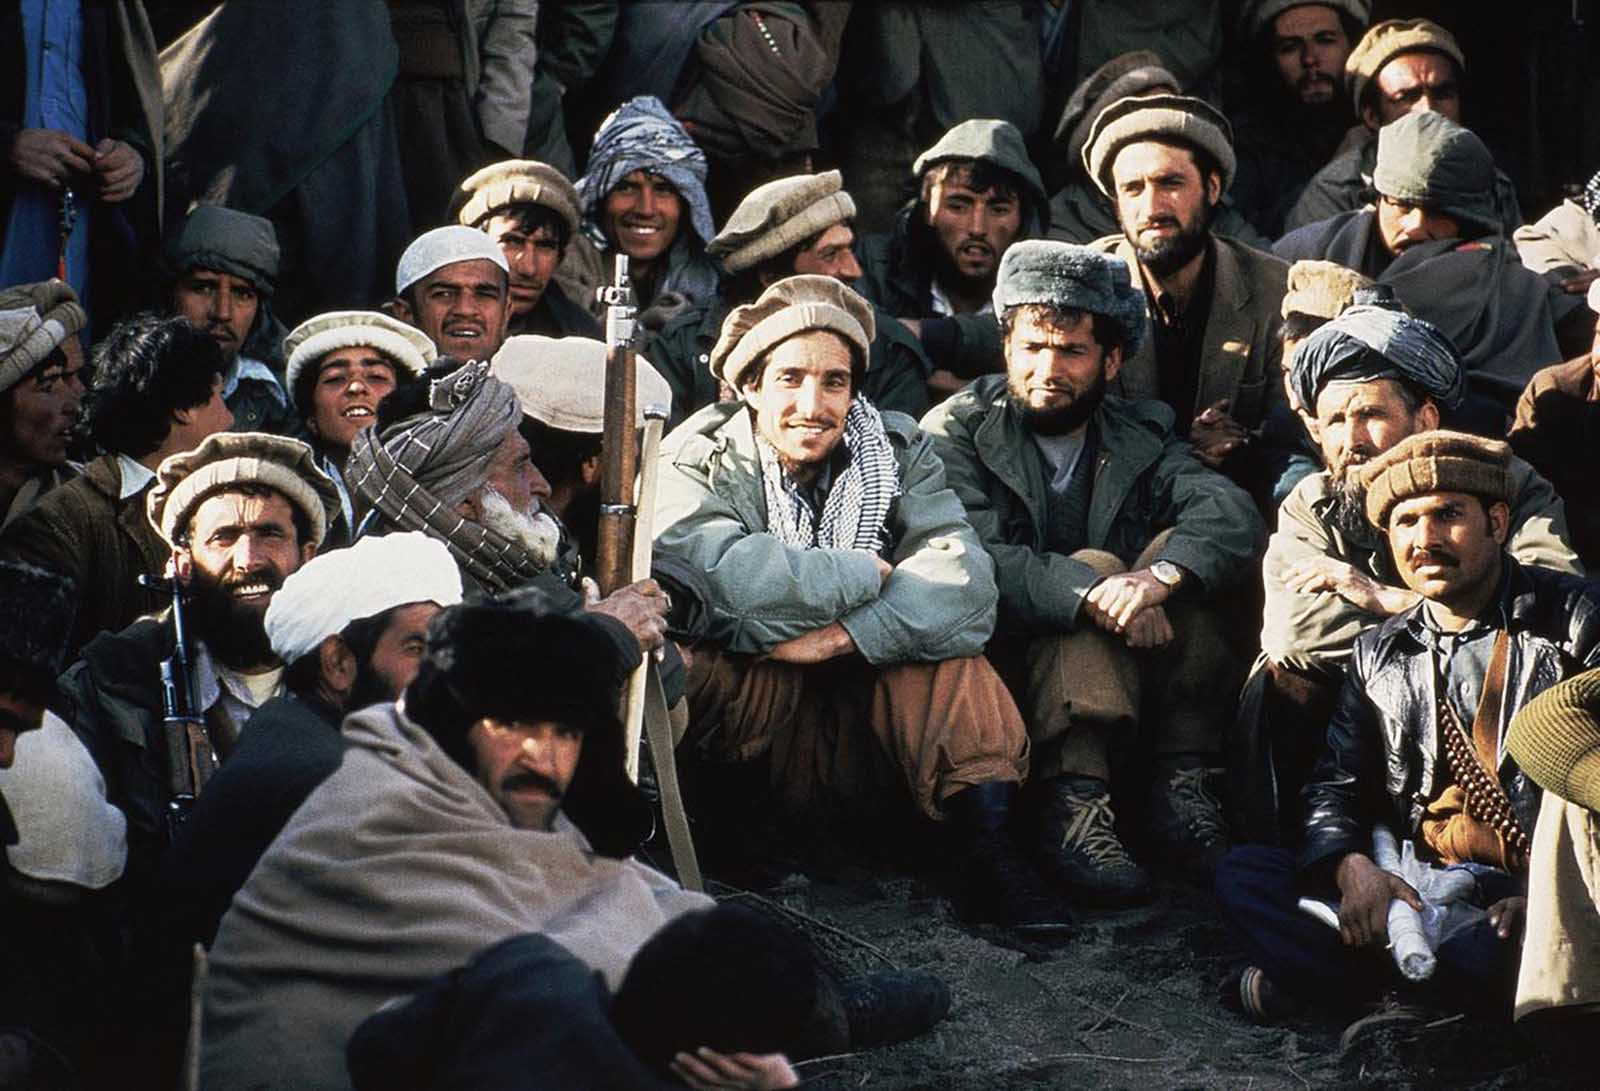 Afghan guerrilla leader, Ahmad Shah Massoud, center, is surrounded by Mujahideen commanders at a meeting of the rebels in the Panchir Valley in northeast Afghanistan in 1984. Massoud was central to much of the ant-Soviet resistance, and after the troops left, struggled with others to create a new government. In a few years, Massoud and his forces were fighting the Taliban, and he had become an enemy of Osama bin Laden. On September 9, 2001 Massoud was assassinated by two attackers backed by Al Qaeda, just days before the September 11 attacks on the U.S.